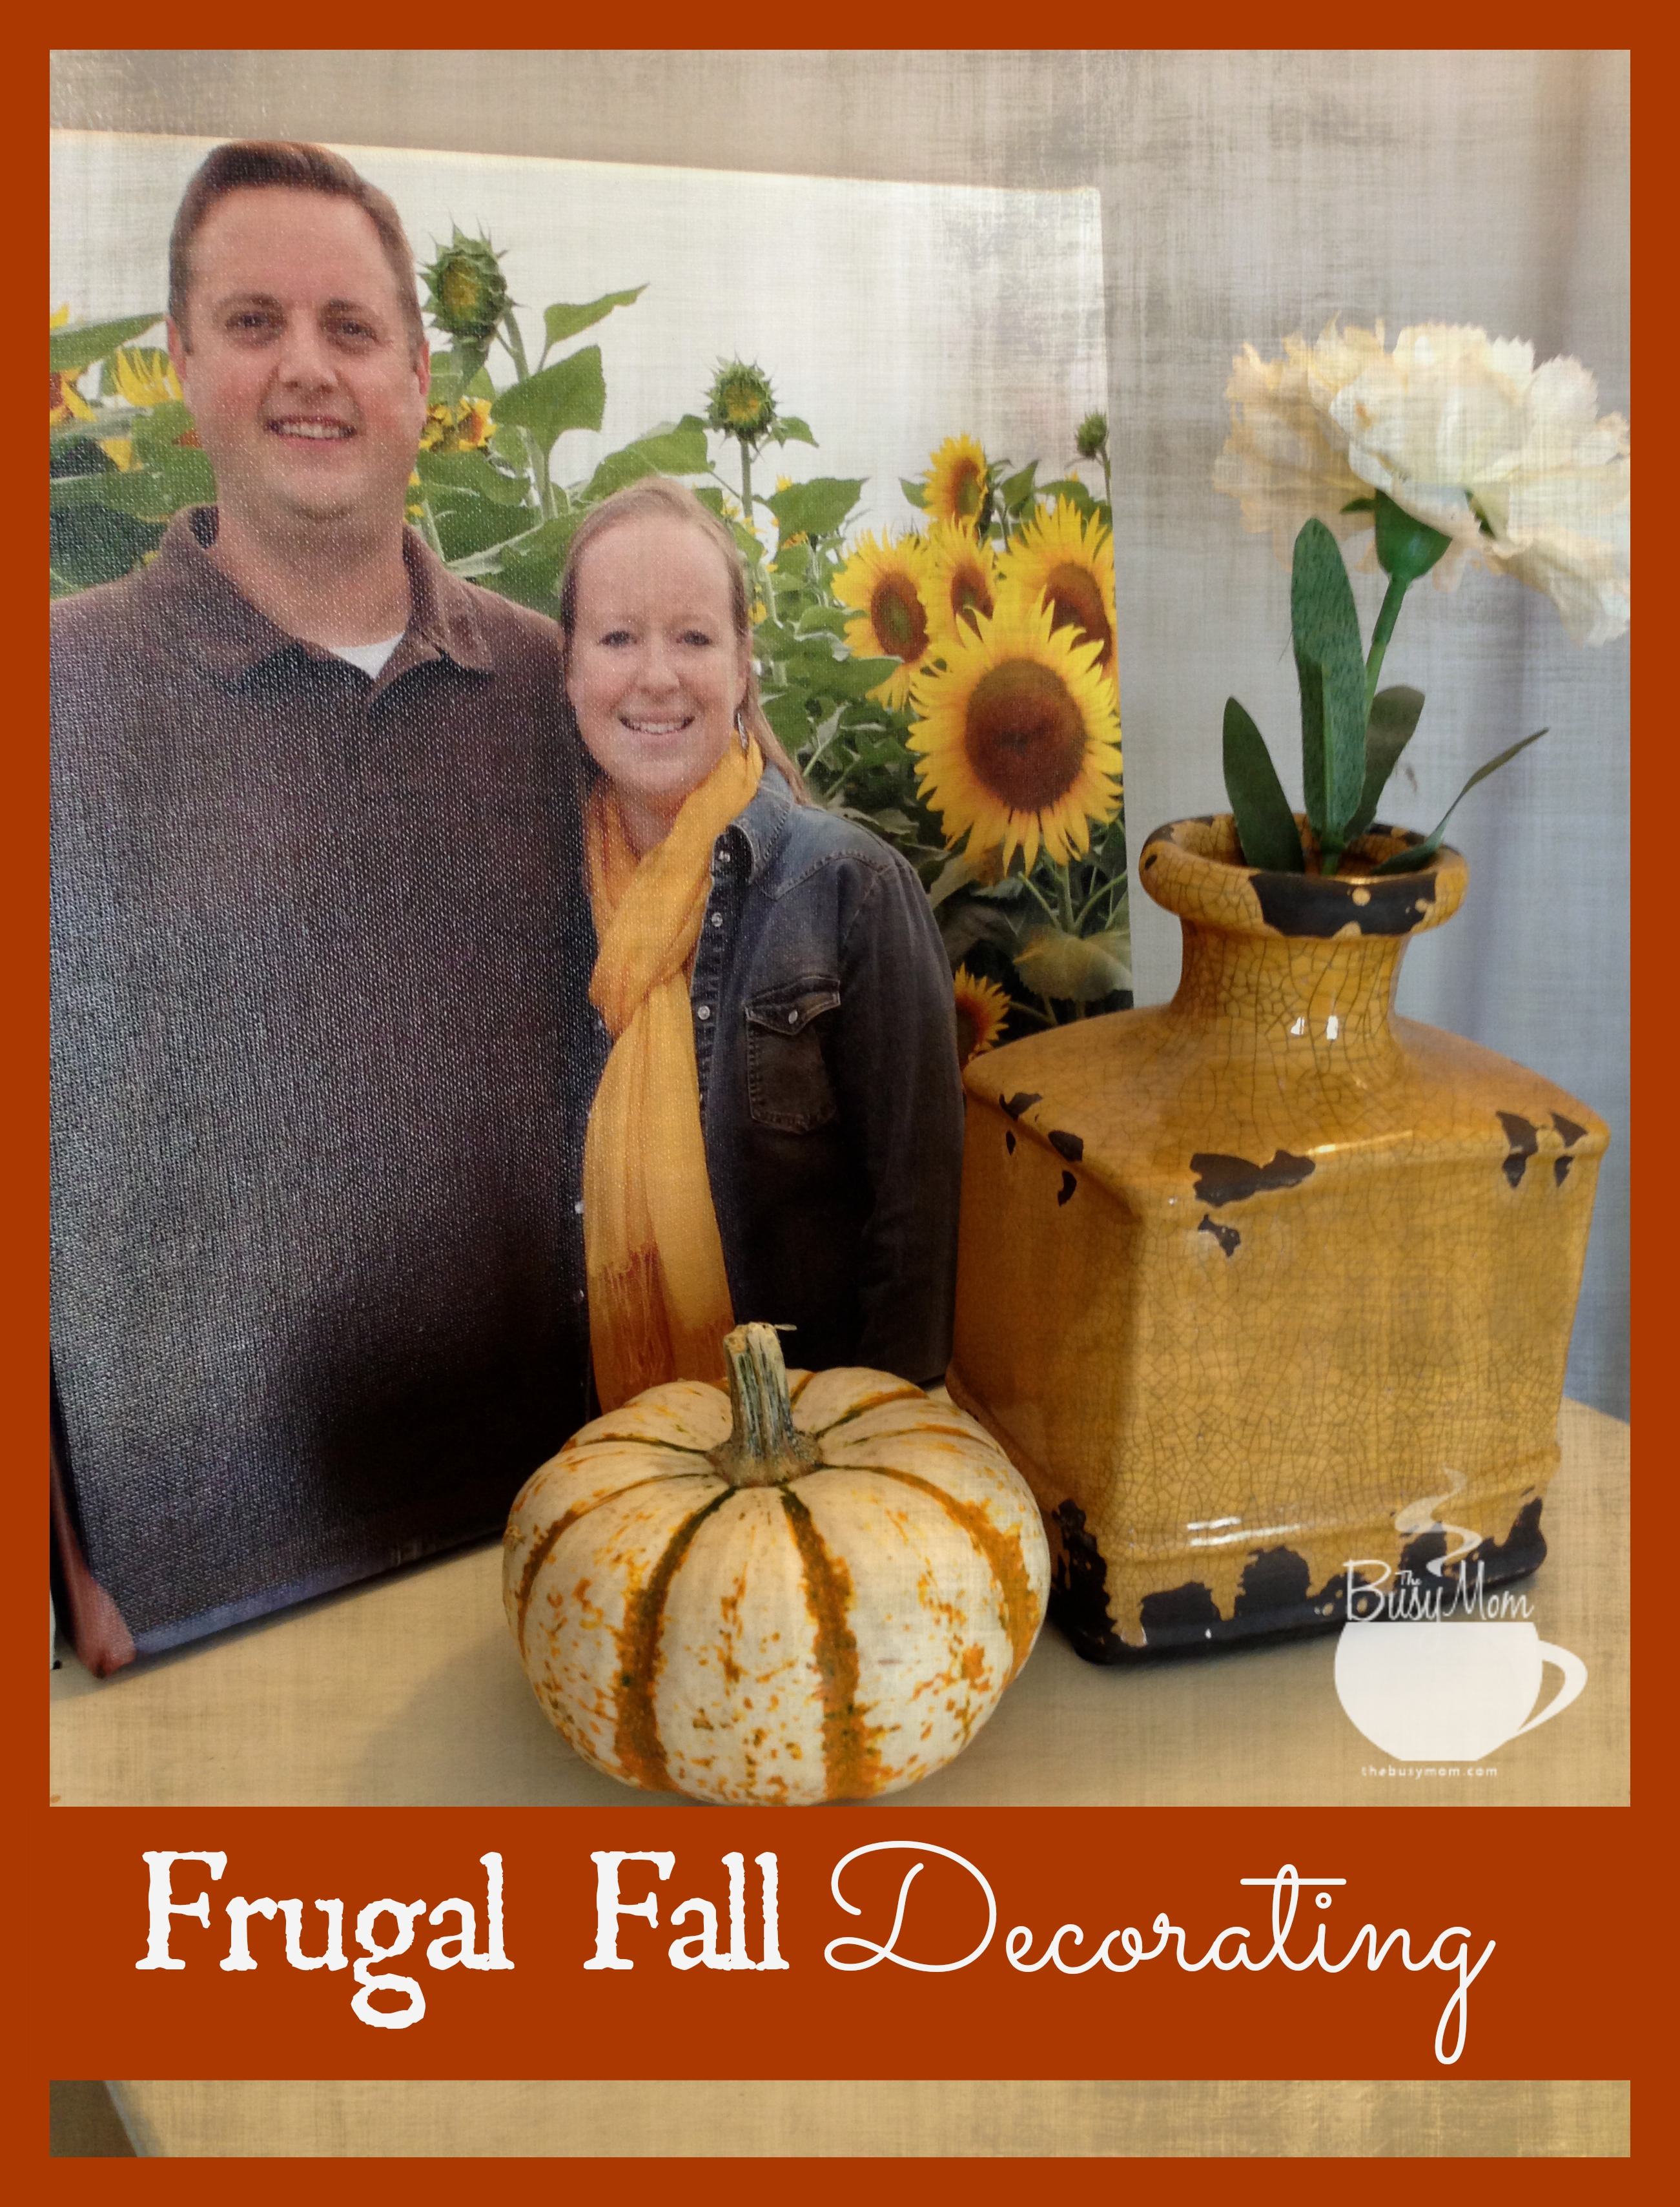 frugal fall decorating ideas author and speaker heidi